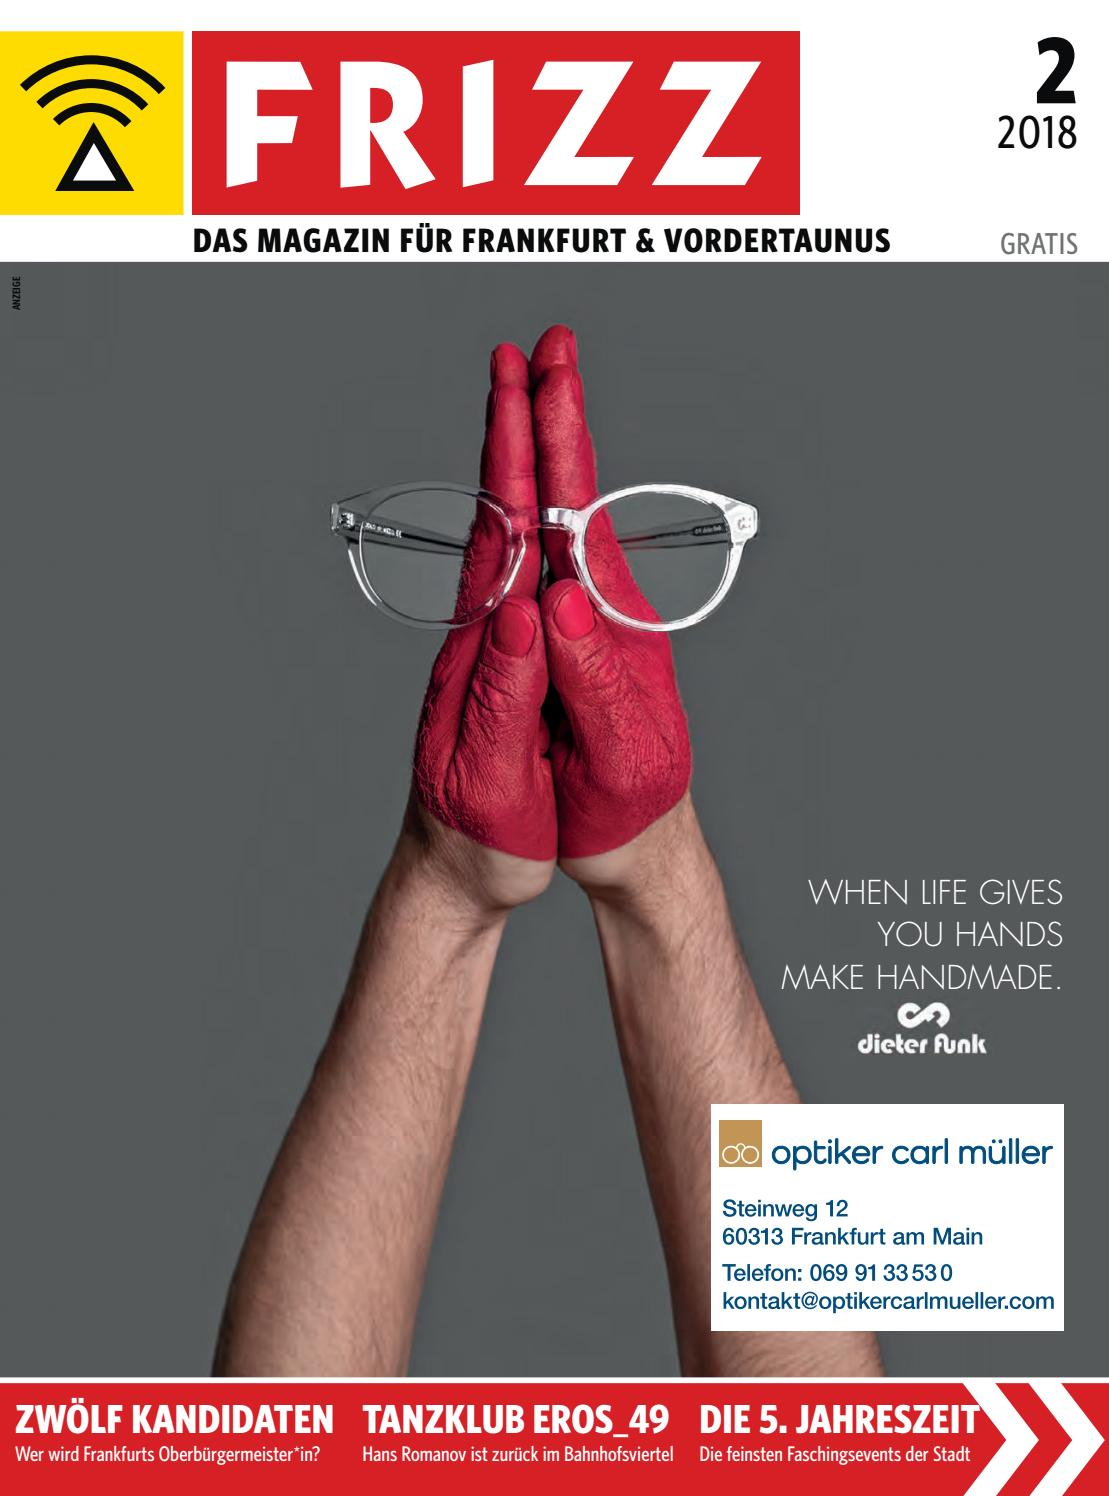 Test Optiker 2015 Frizz Das Magazin Frankfurt Februar 2018 By Frizz Frankfurt